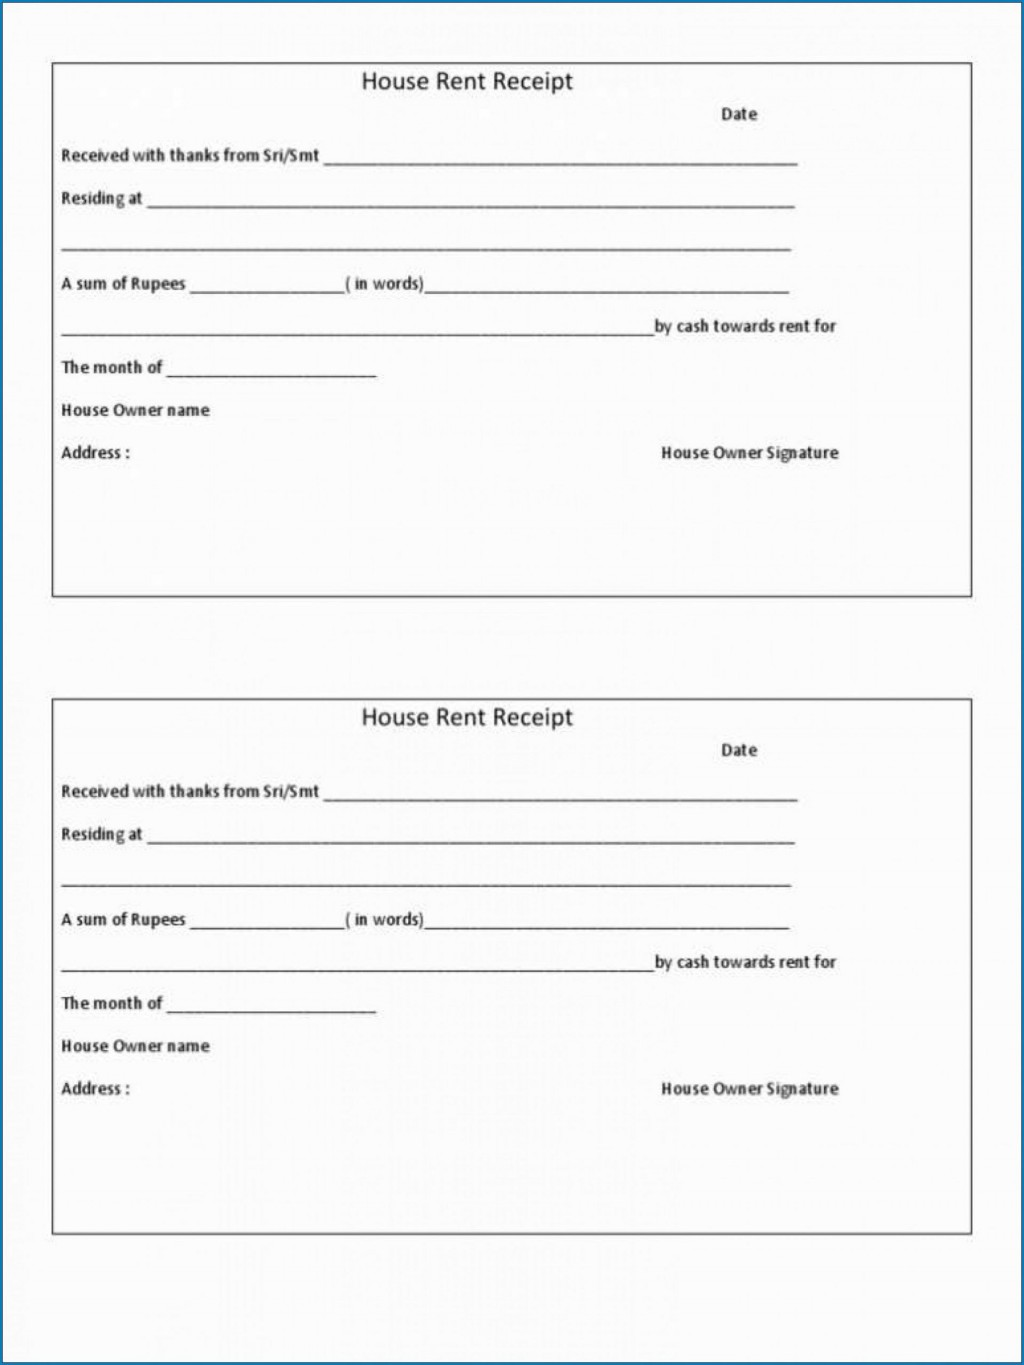 009 Stirring House Rent Receipt Sample Doc Design  Template India Bill Format Word Document Pdf DownloadLarge